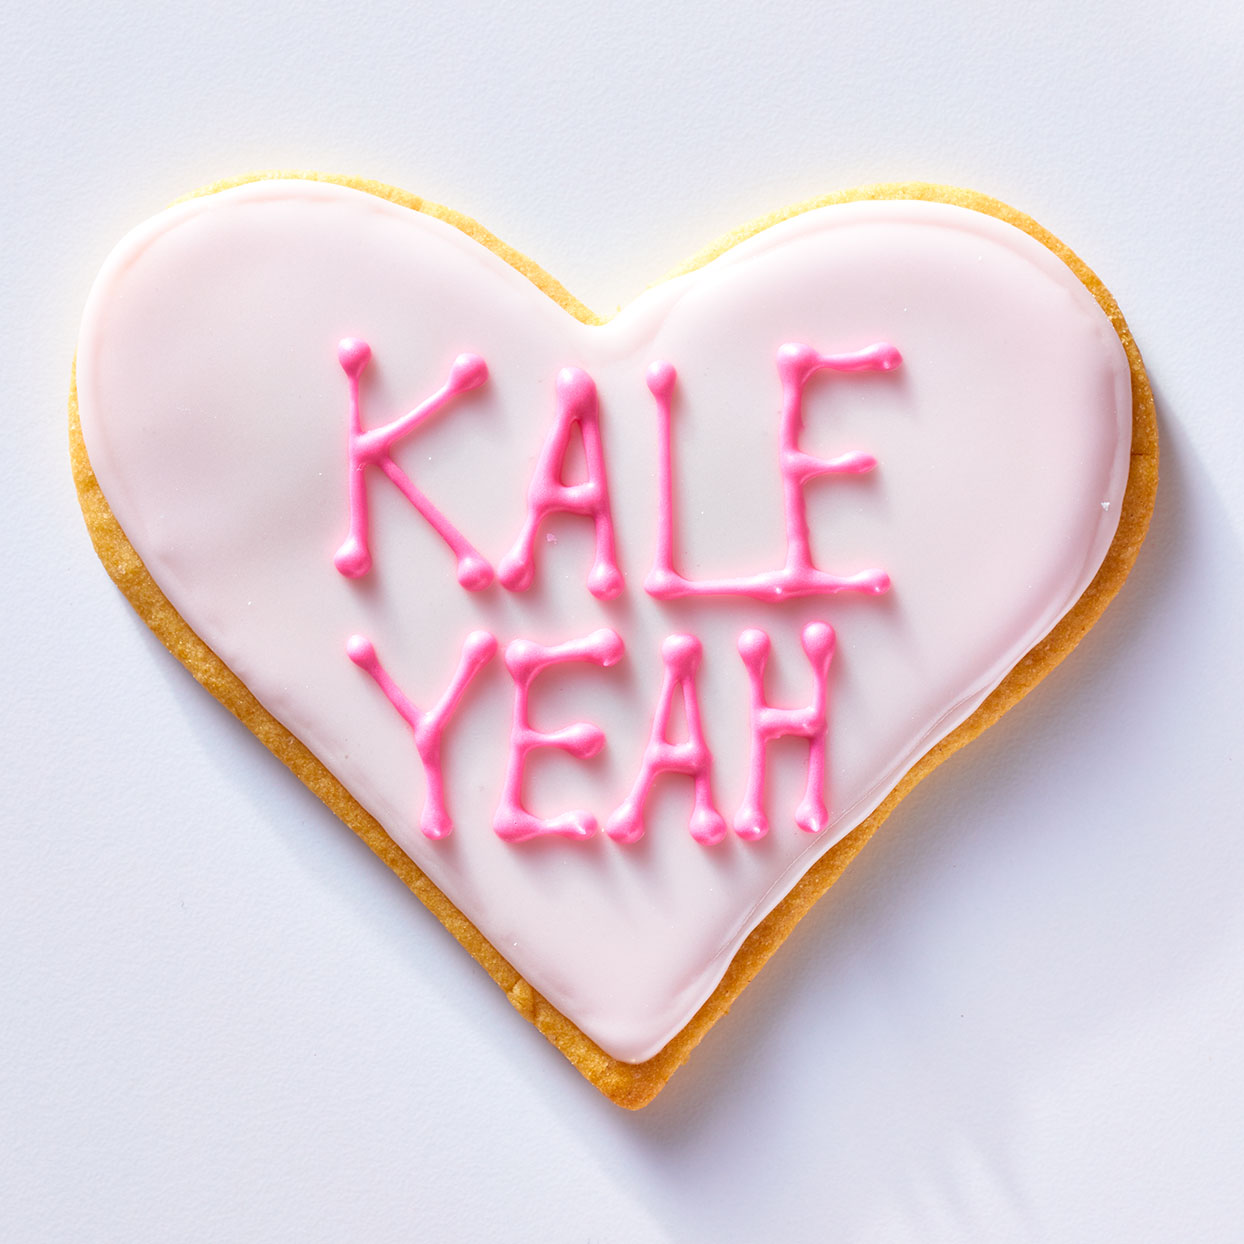 Kale Yeah Conversation Heart Cookie